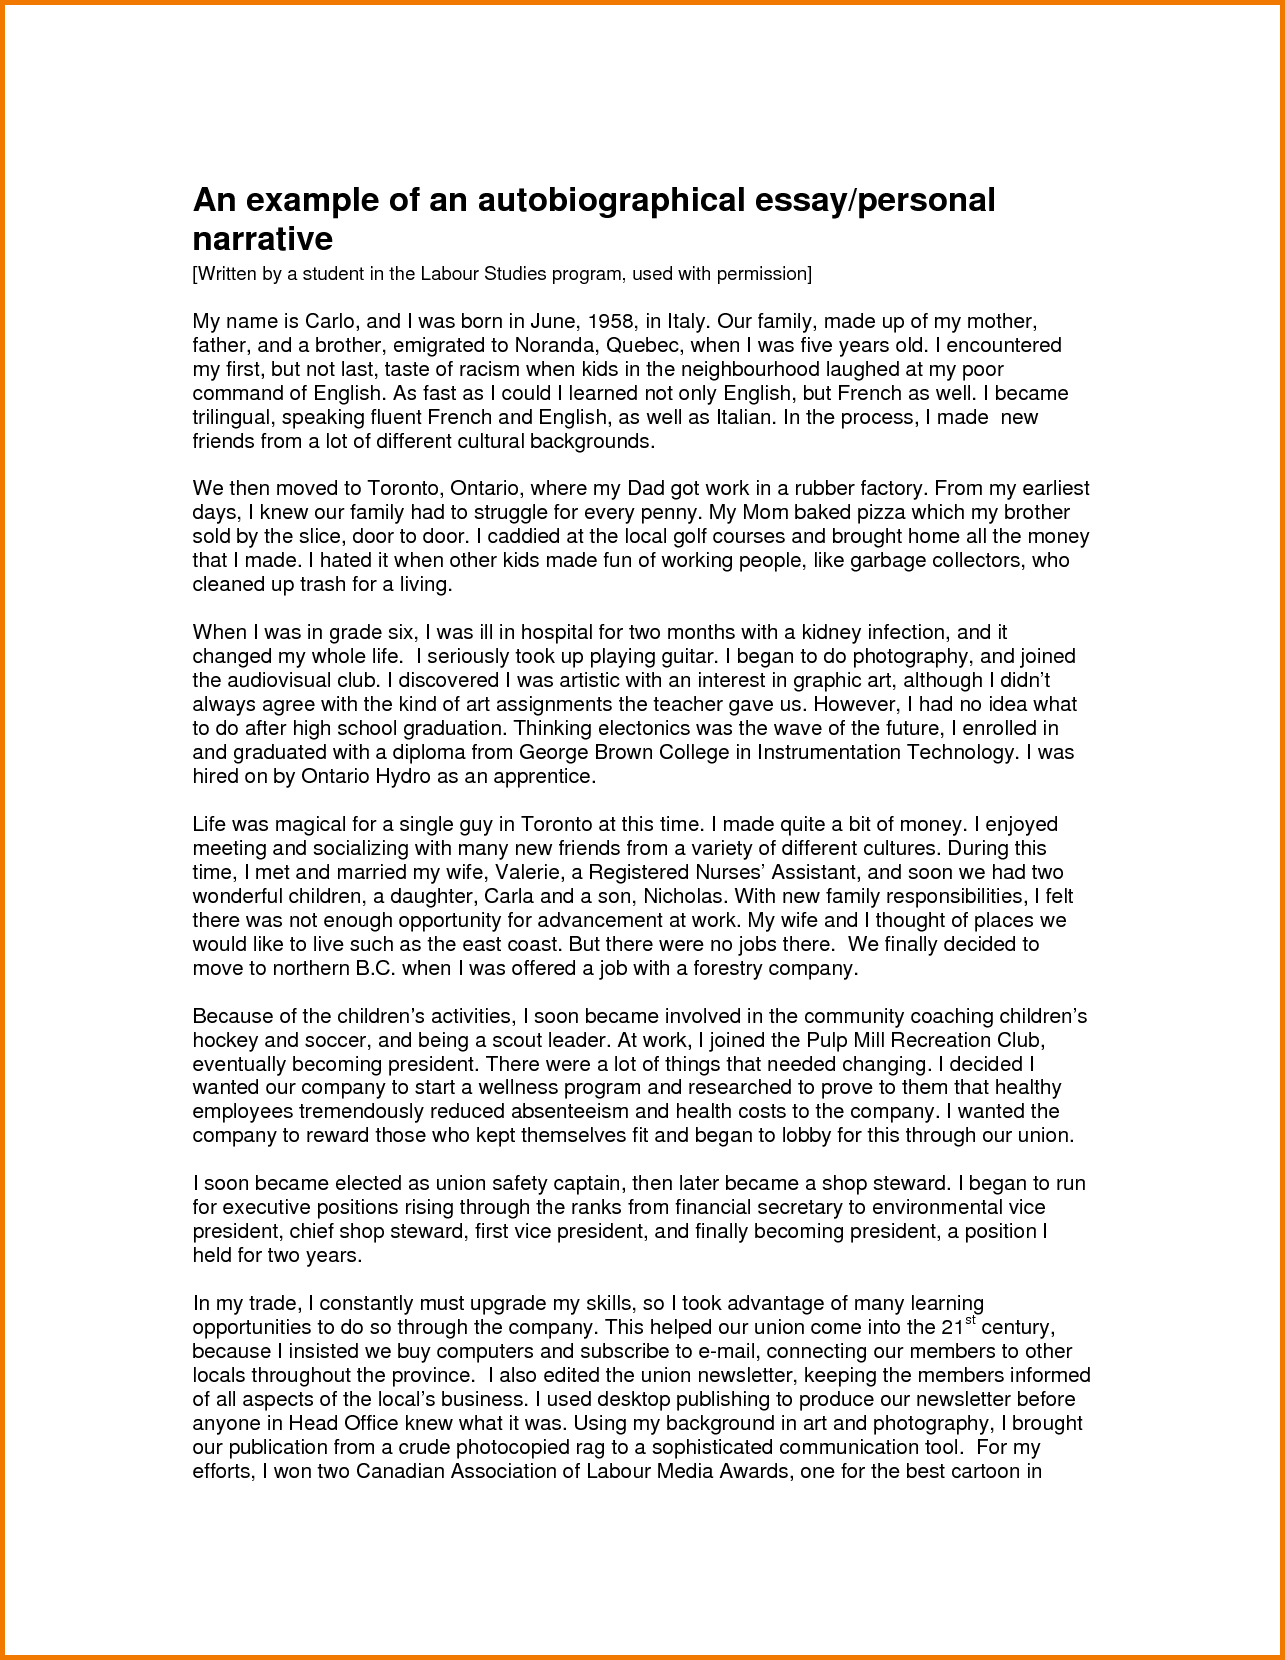 027 Essay Example Writer Free Of Narrative About Family Printable Writing Amazing App Generator Software Download Full